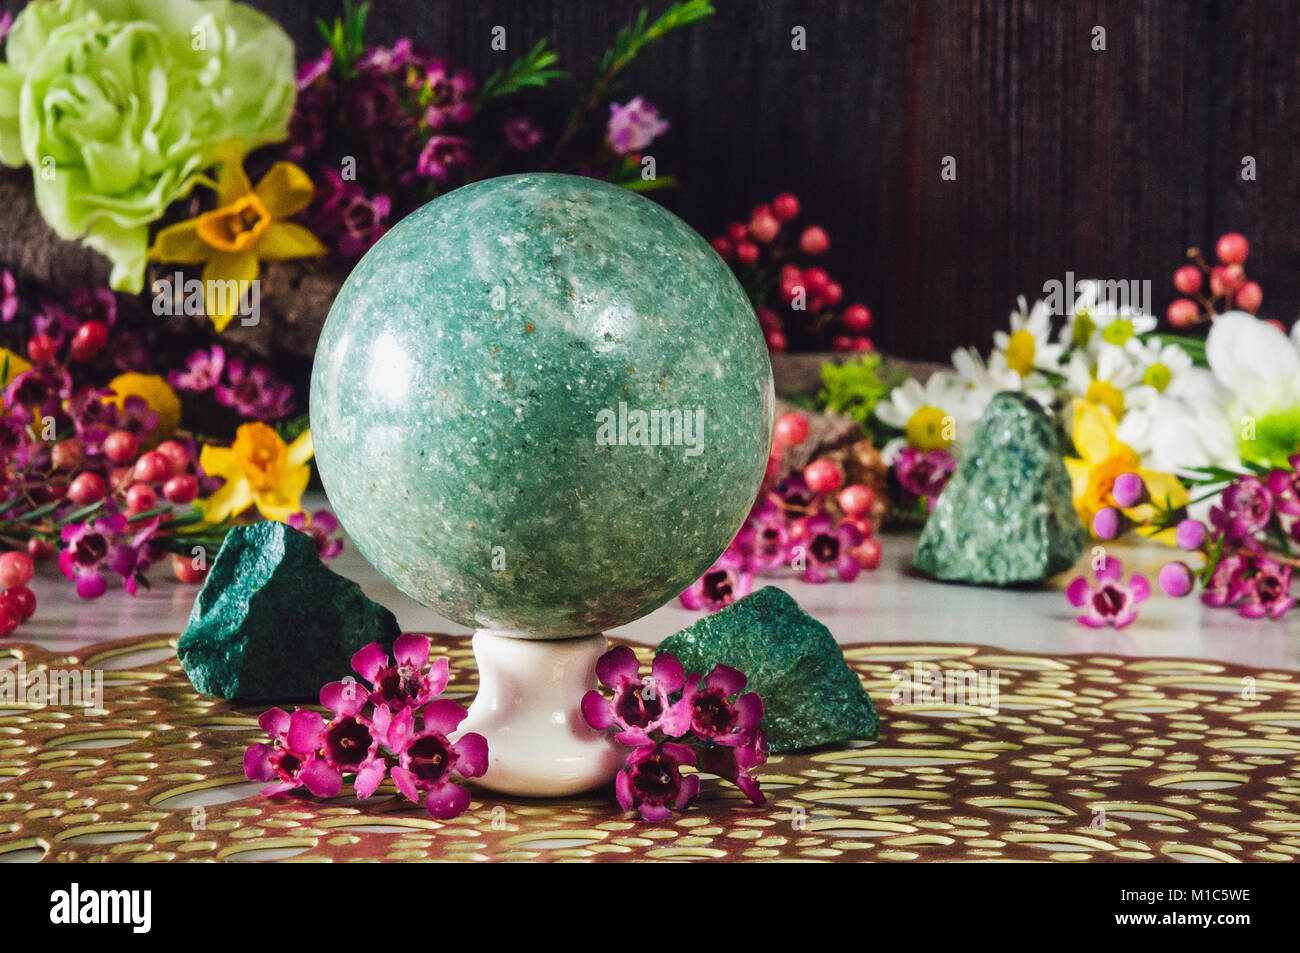 Green Aventurine Sphere Surrounded with Assorted Flowers and Rough Stones - Stock Image